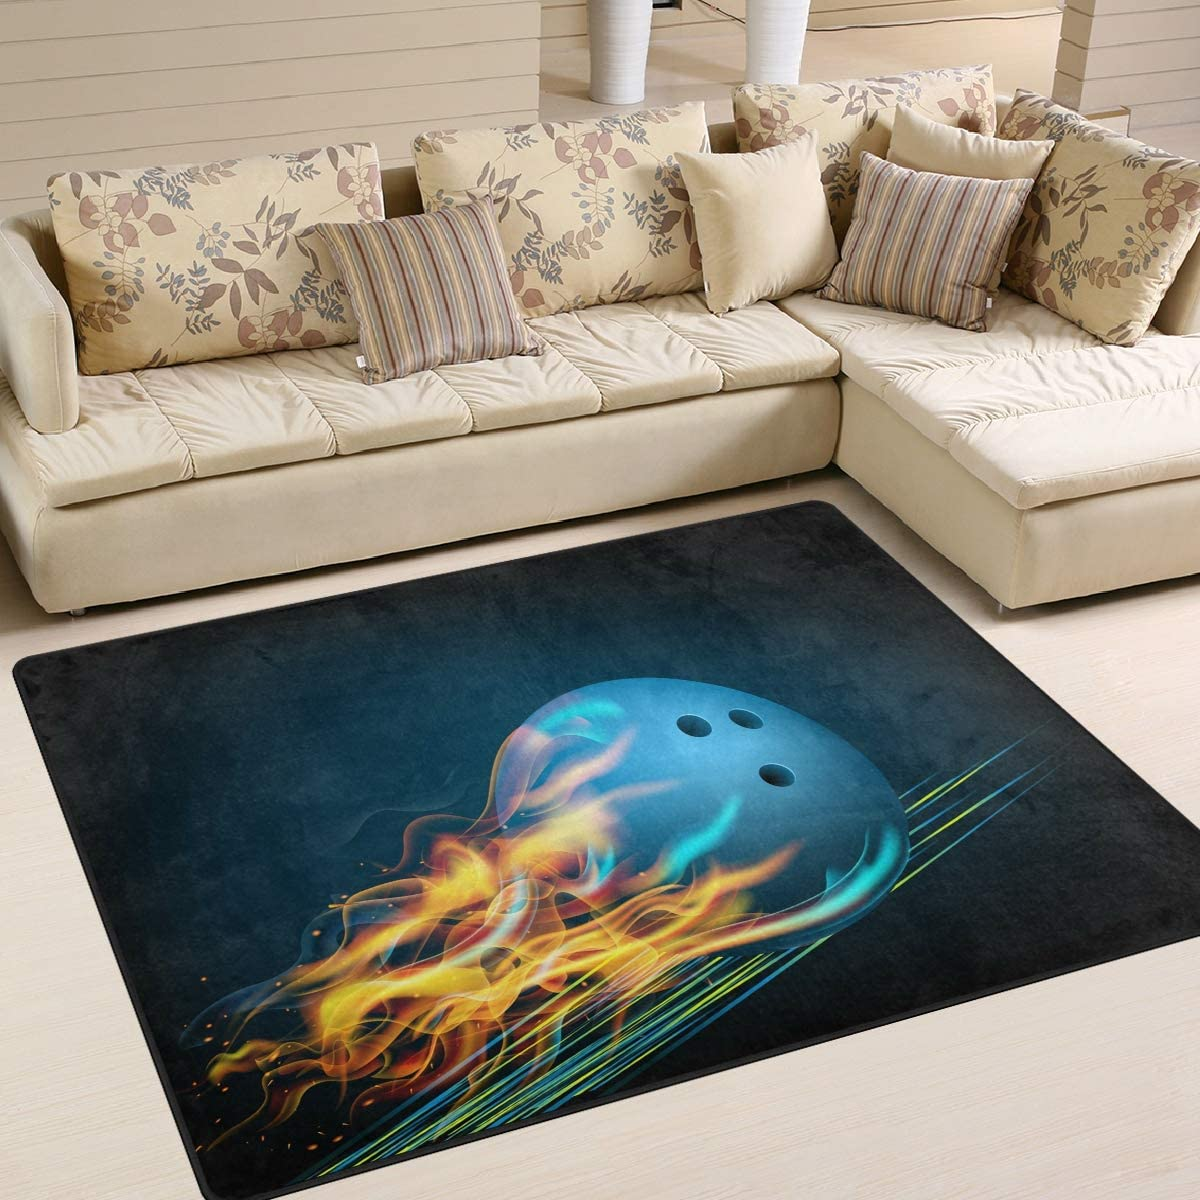 ALAZA Blue Bowling Ball Max 70% OFF Flames Area Rugs Tucson Mall for Rug Room Bed Living